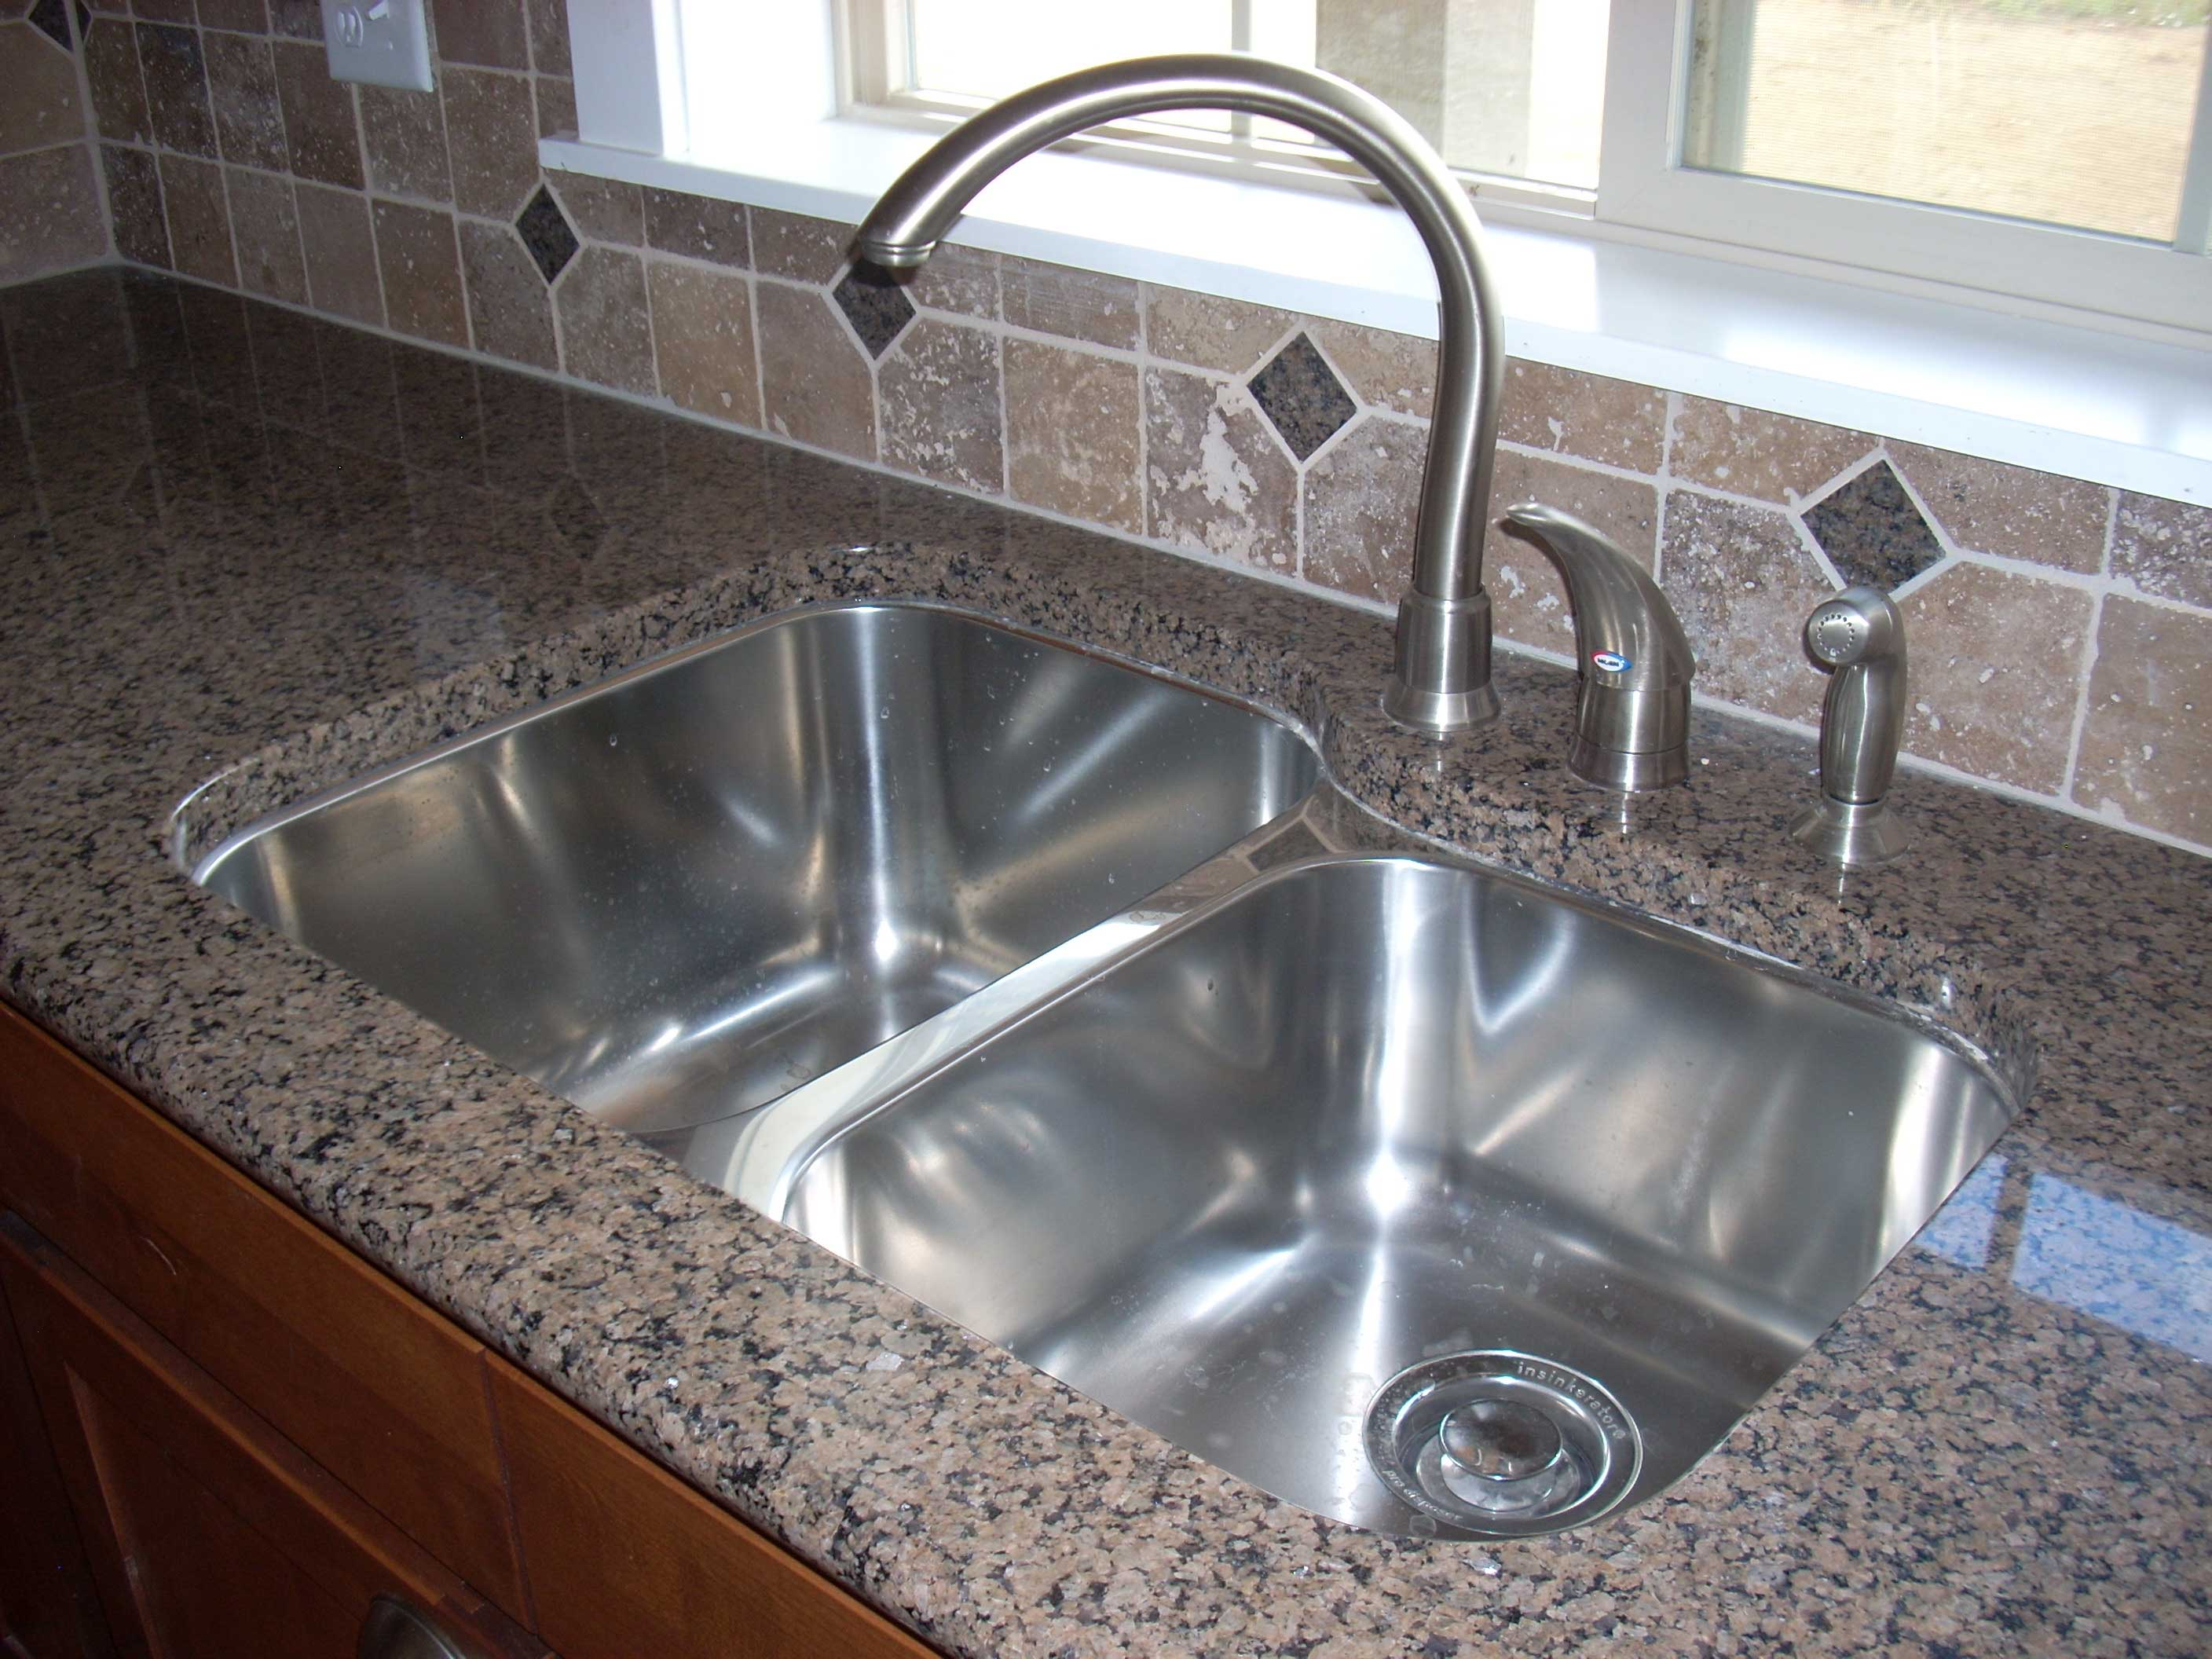 Kitchen Sink Placement In Countertop